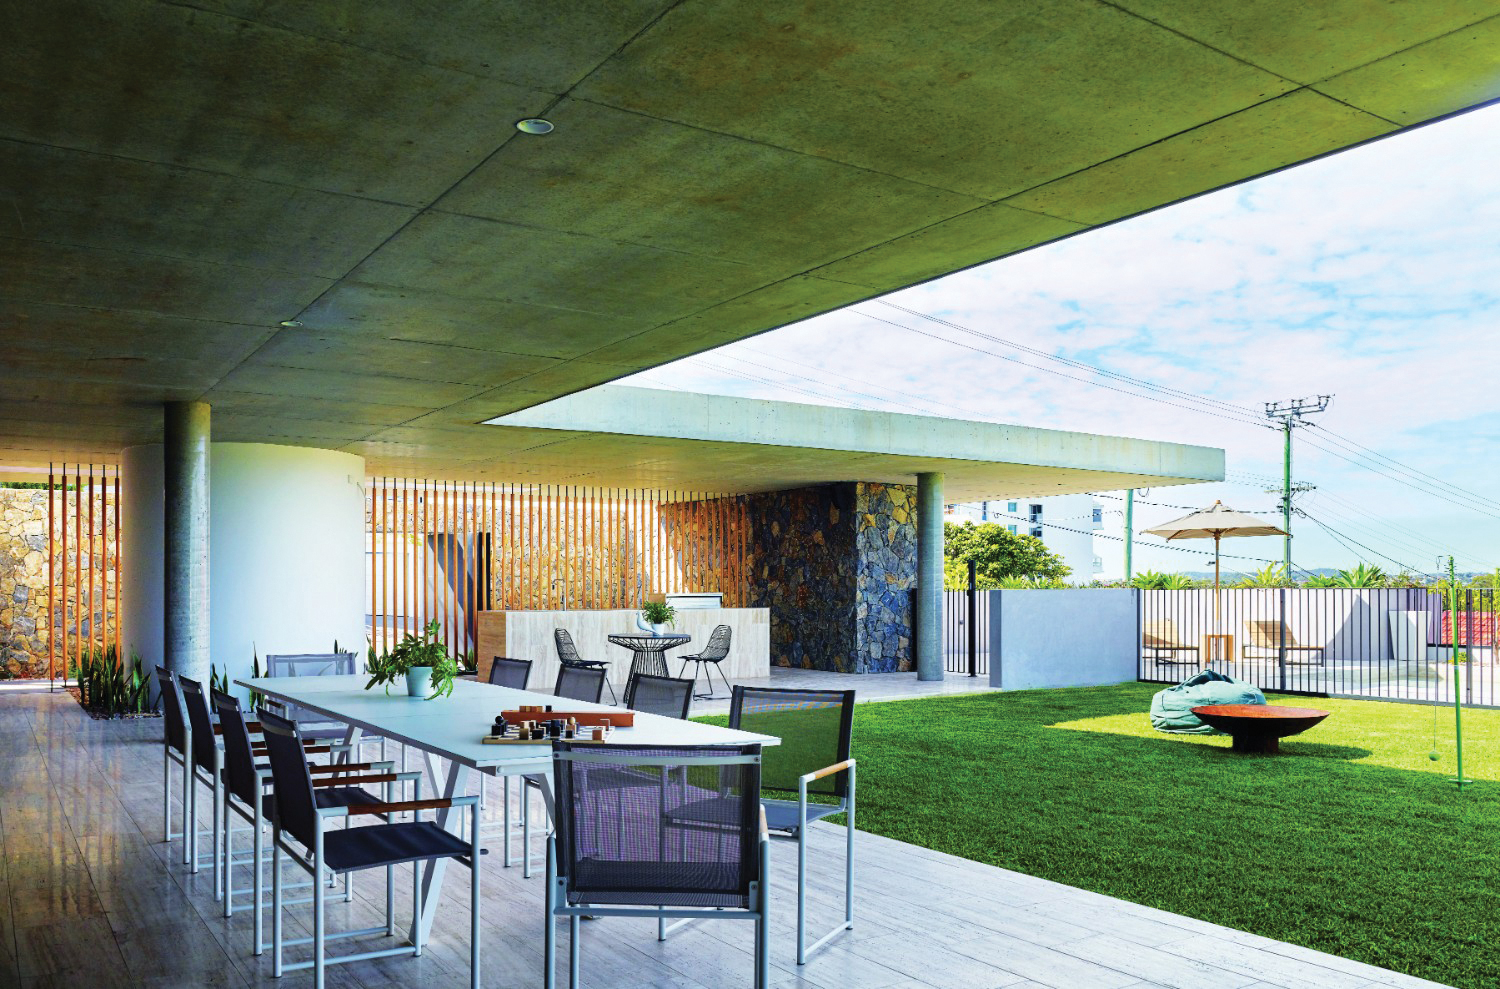 Queensland home: a modern, memorable design